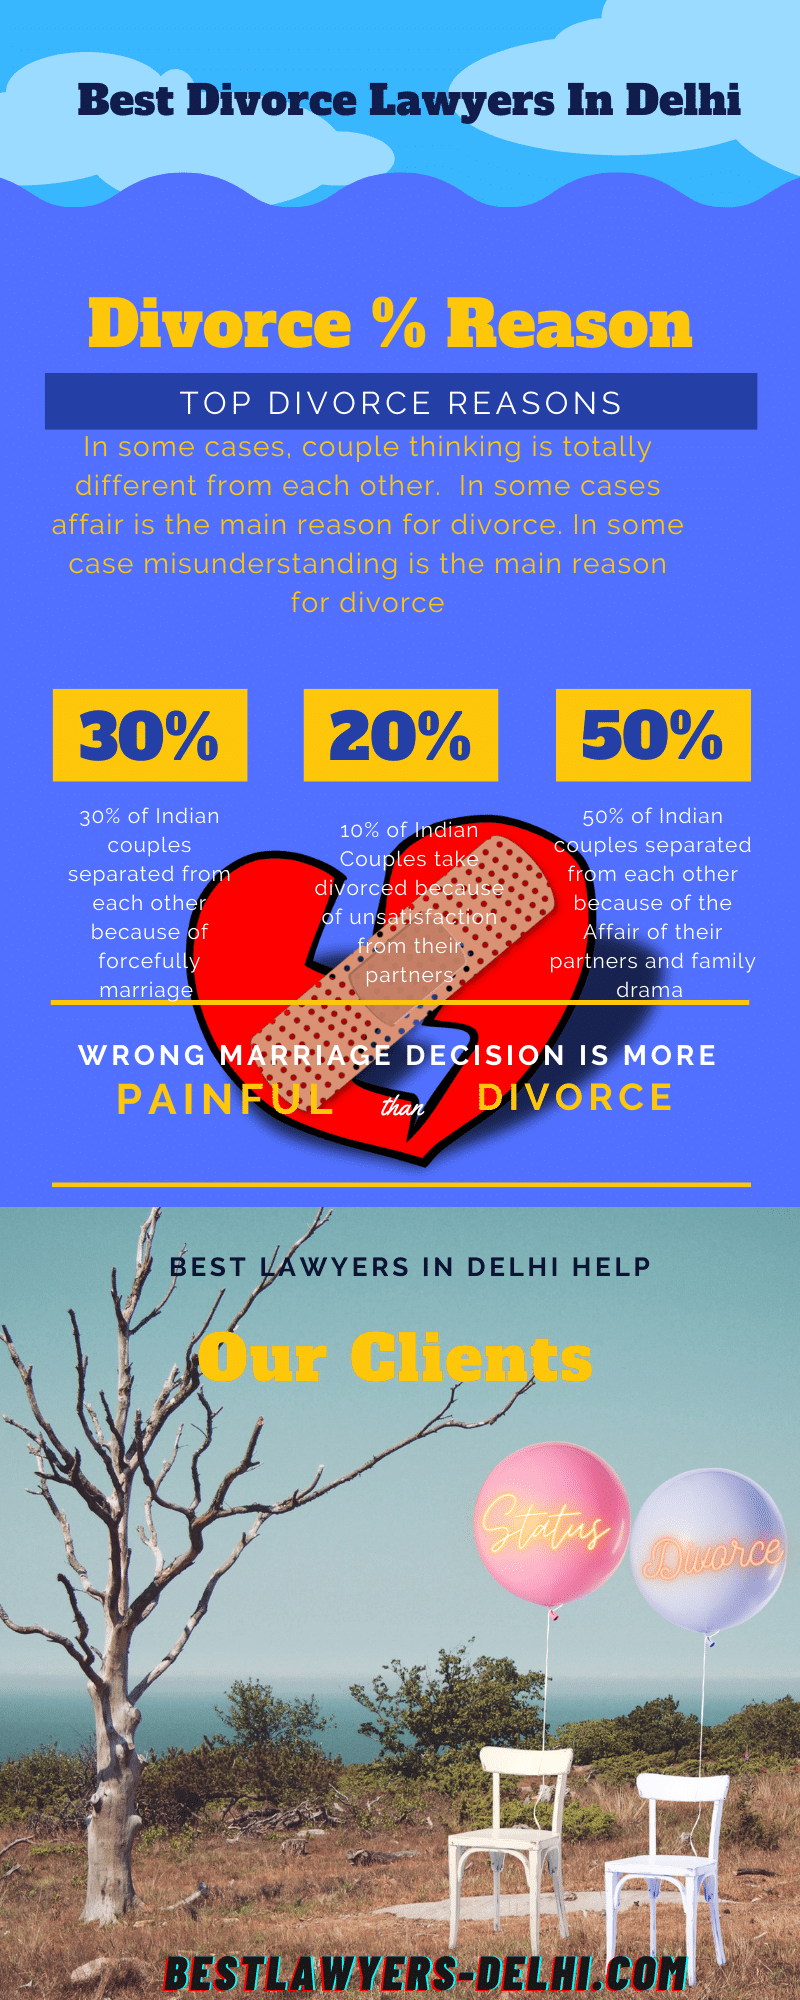 Top 5 Reasons for Divorce in India